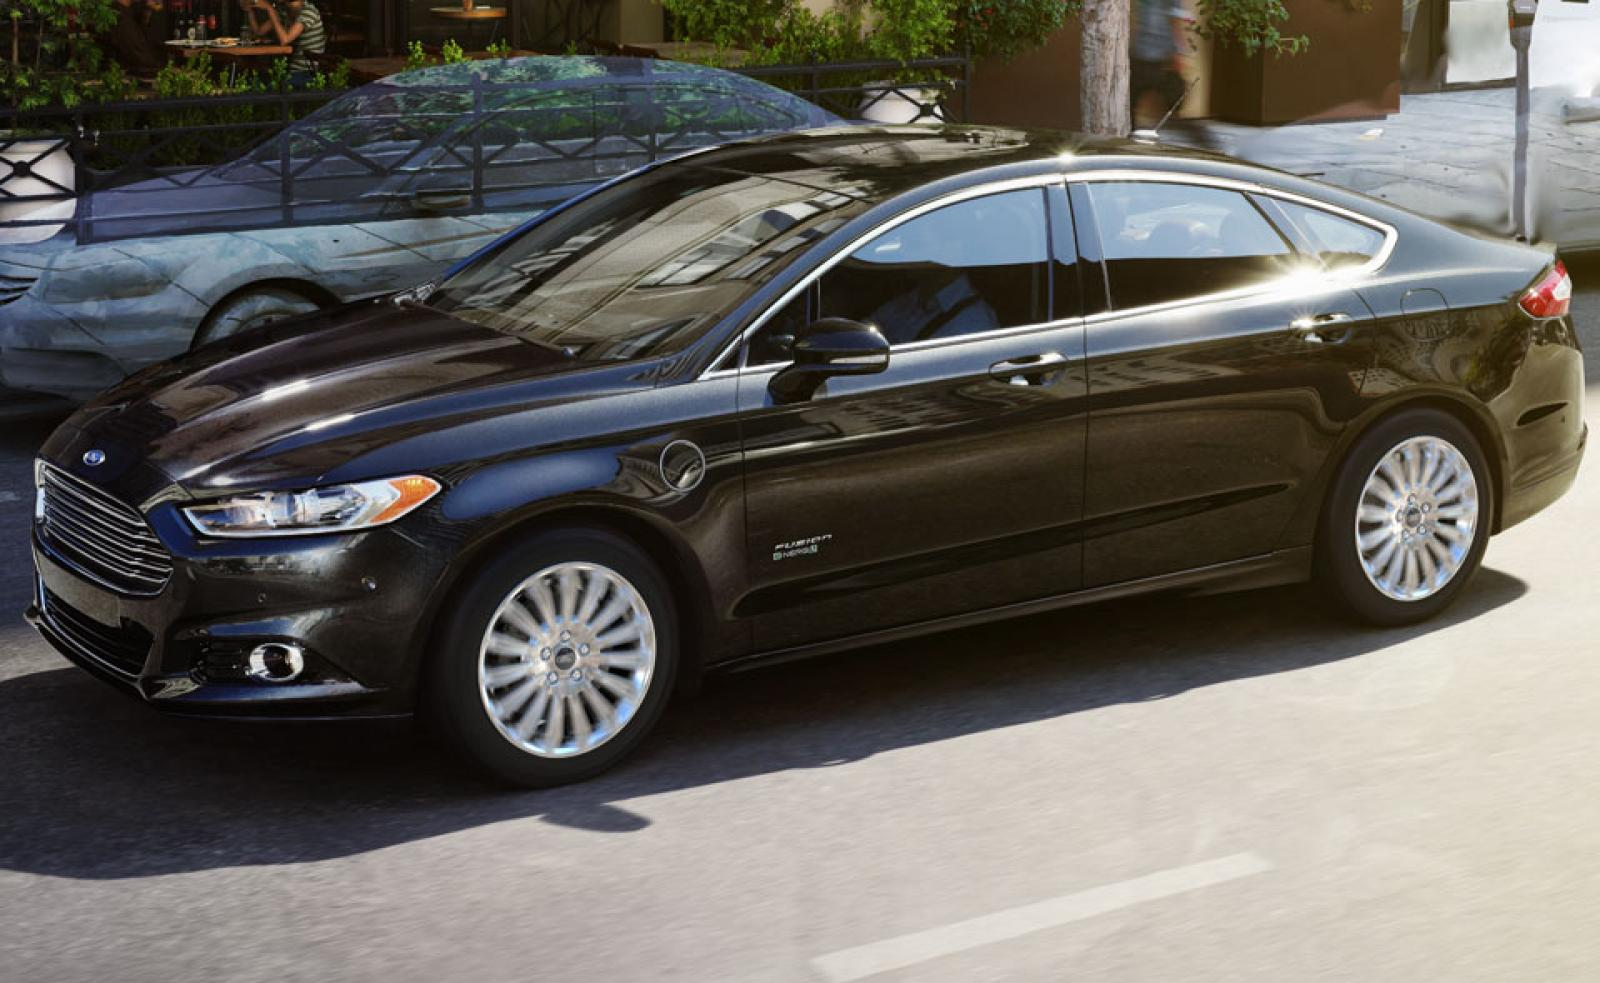 2014 ford fusion energi information and photos zombiedrive - 2015 Ford Fusion Hybrid Black